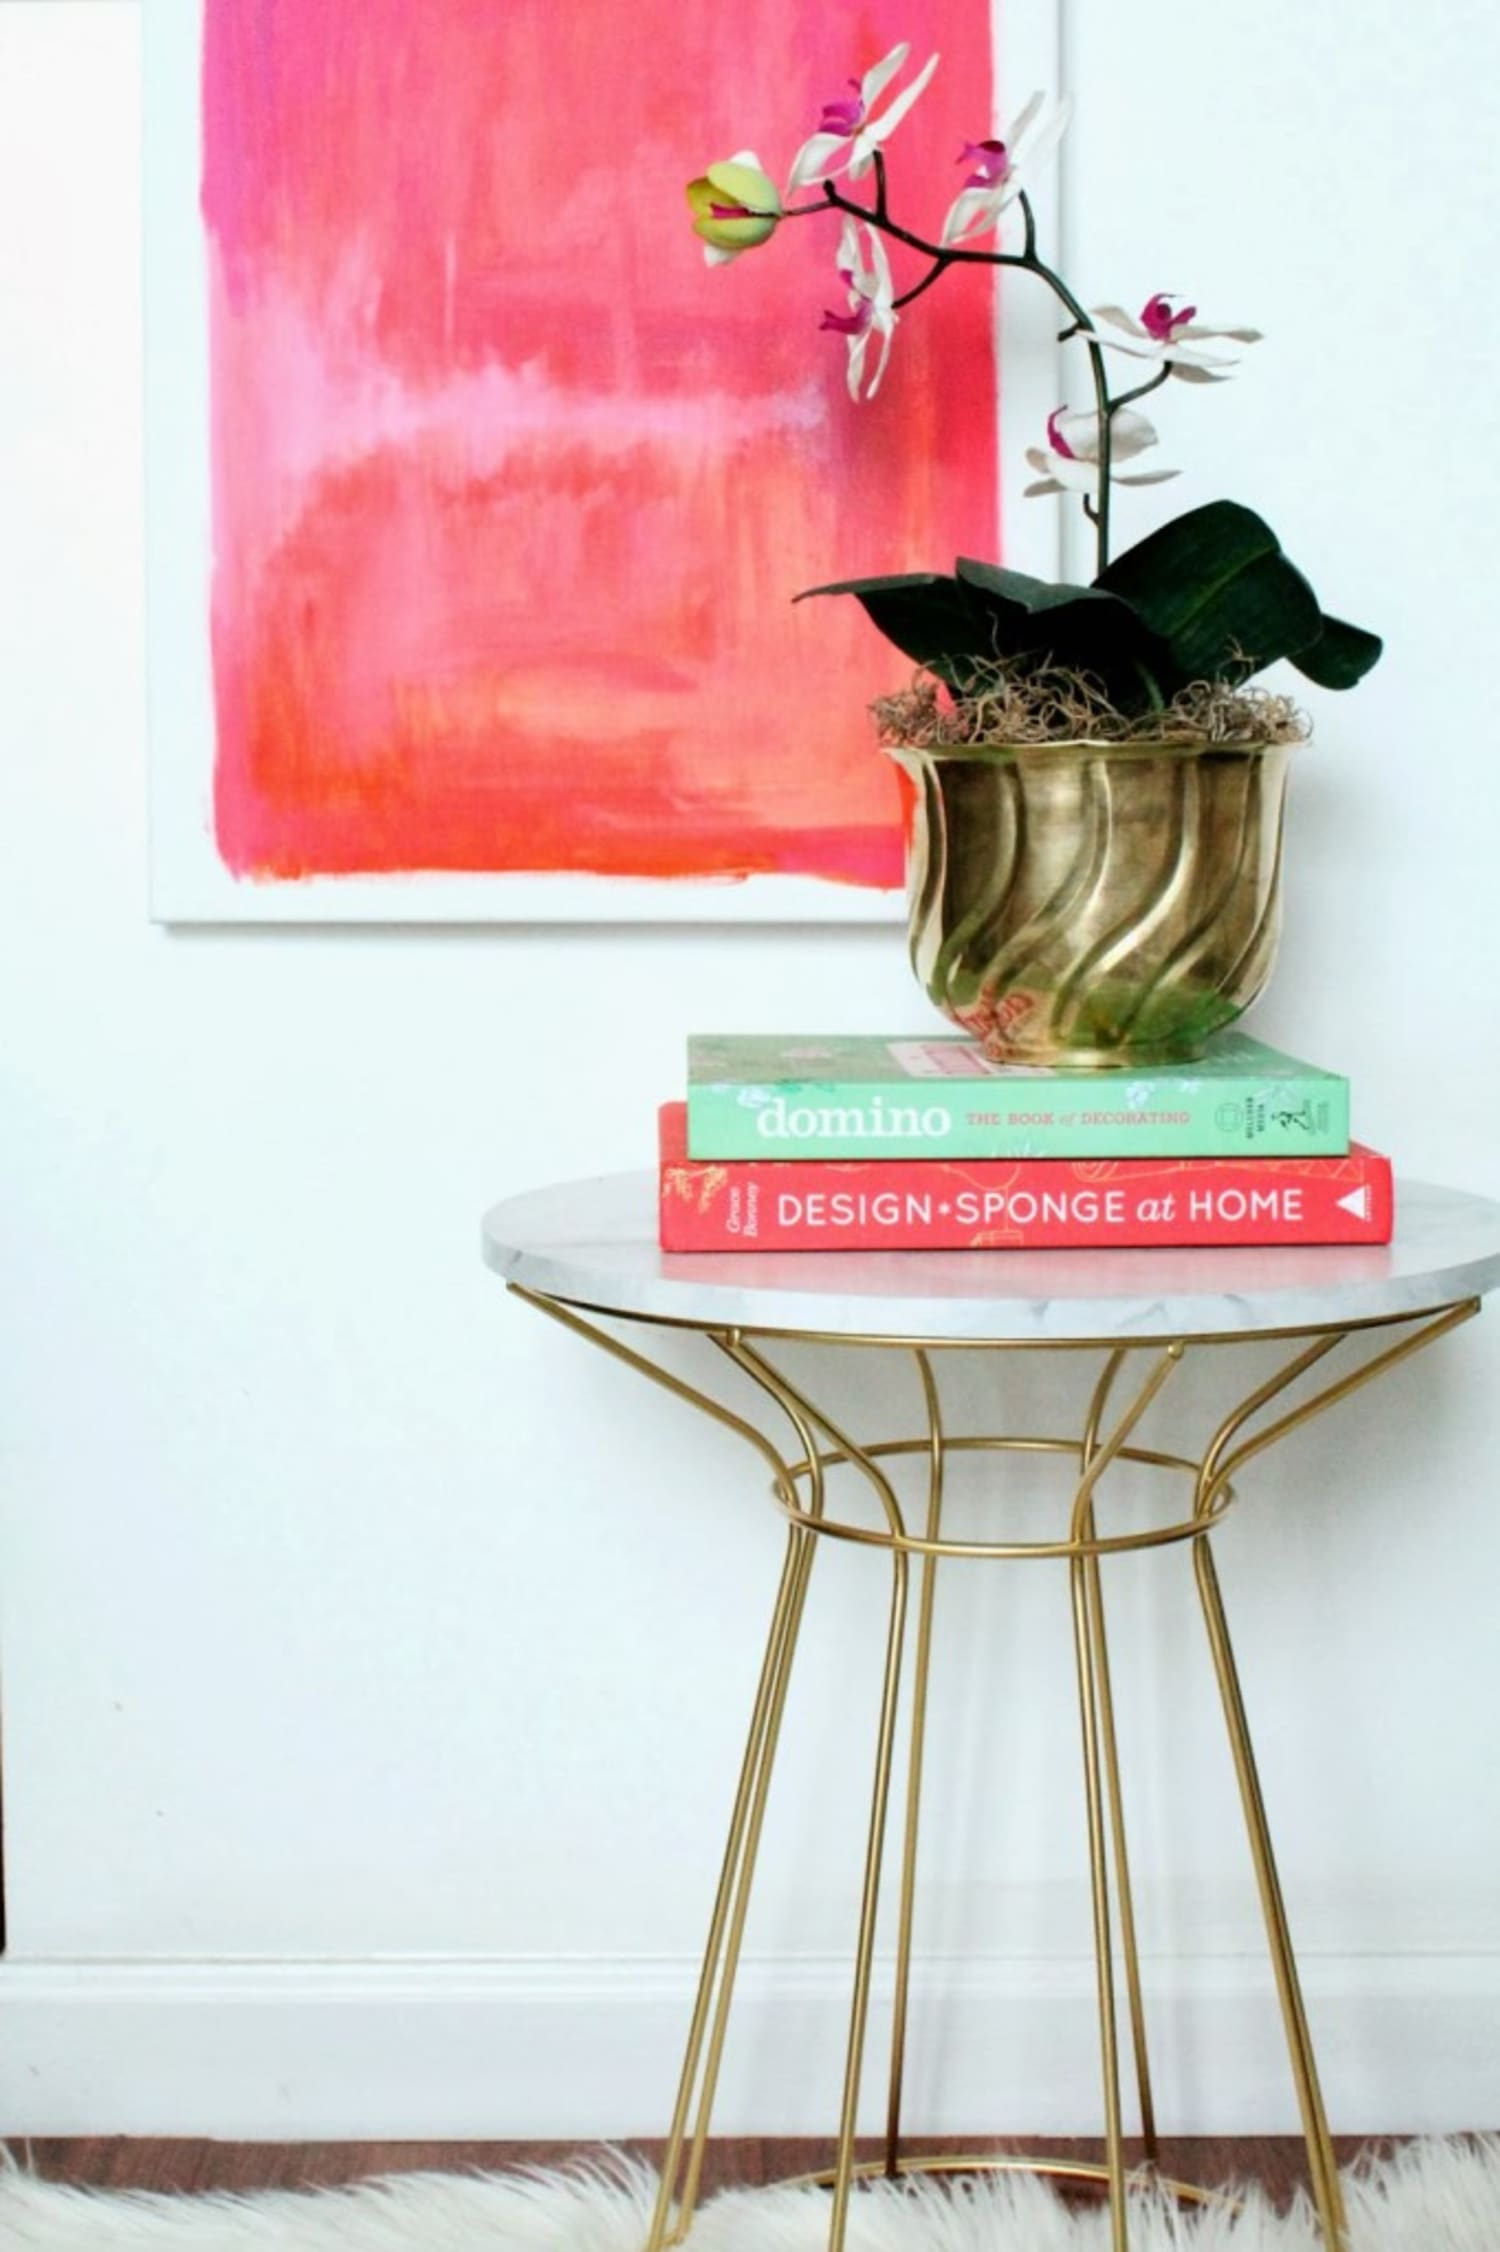 6 One-Step Upgrades to Make Your Things Look Way More Expensive